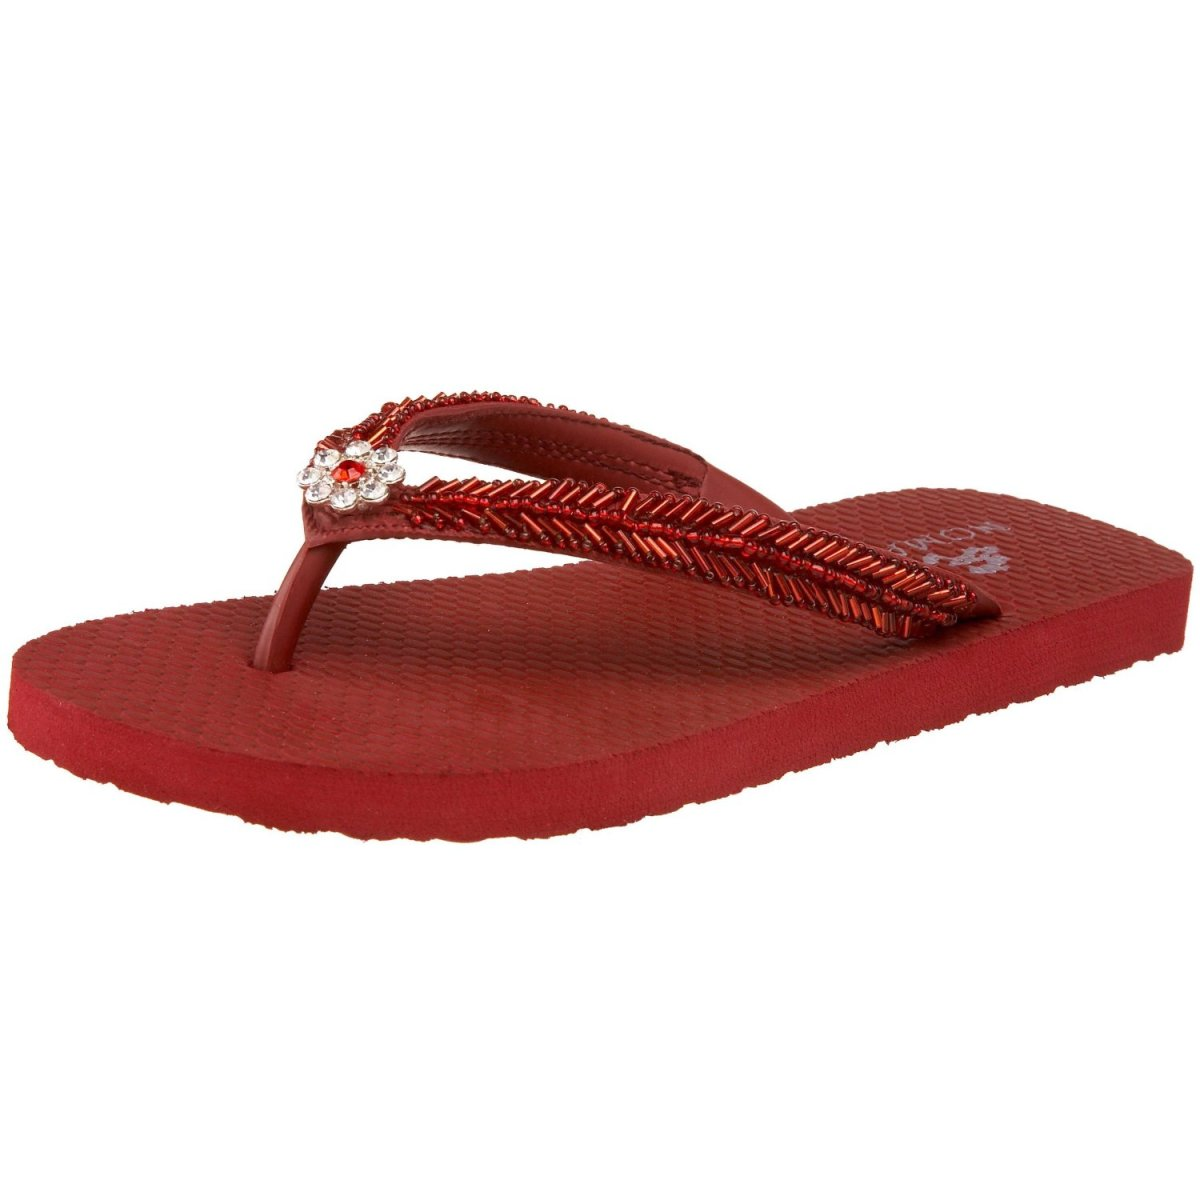 If flip flops are your style, you'll love these Ruby Red Flip Flops!